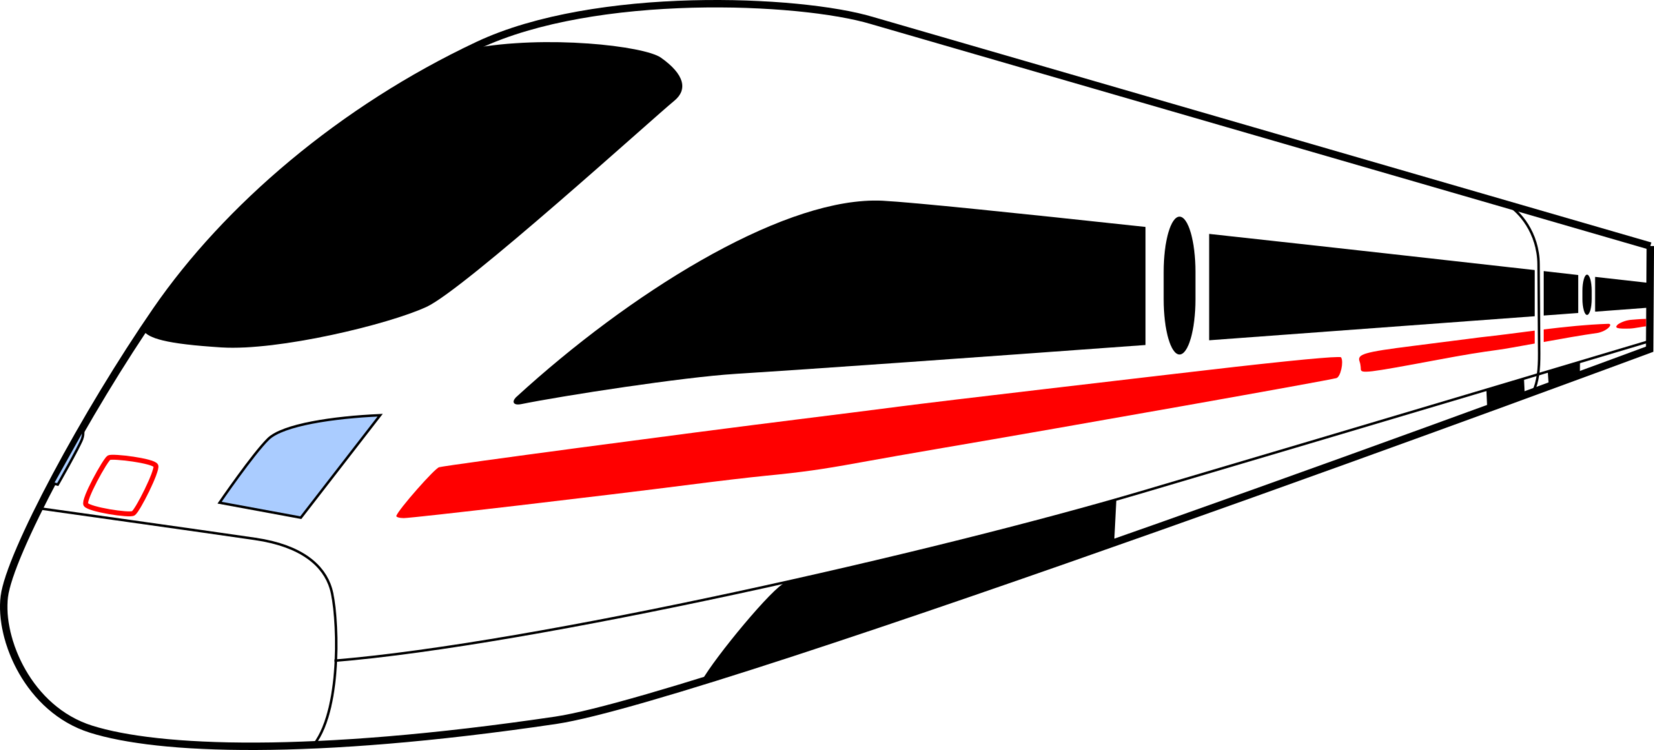 High Speed Rail,Track,Public Transport